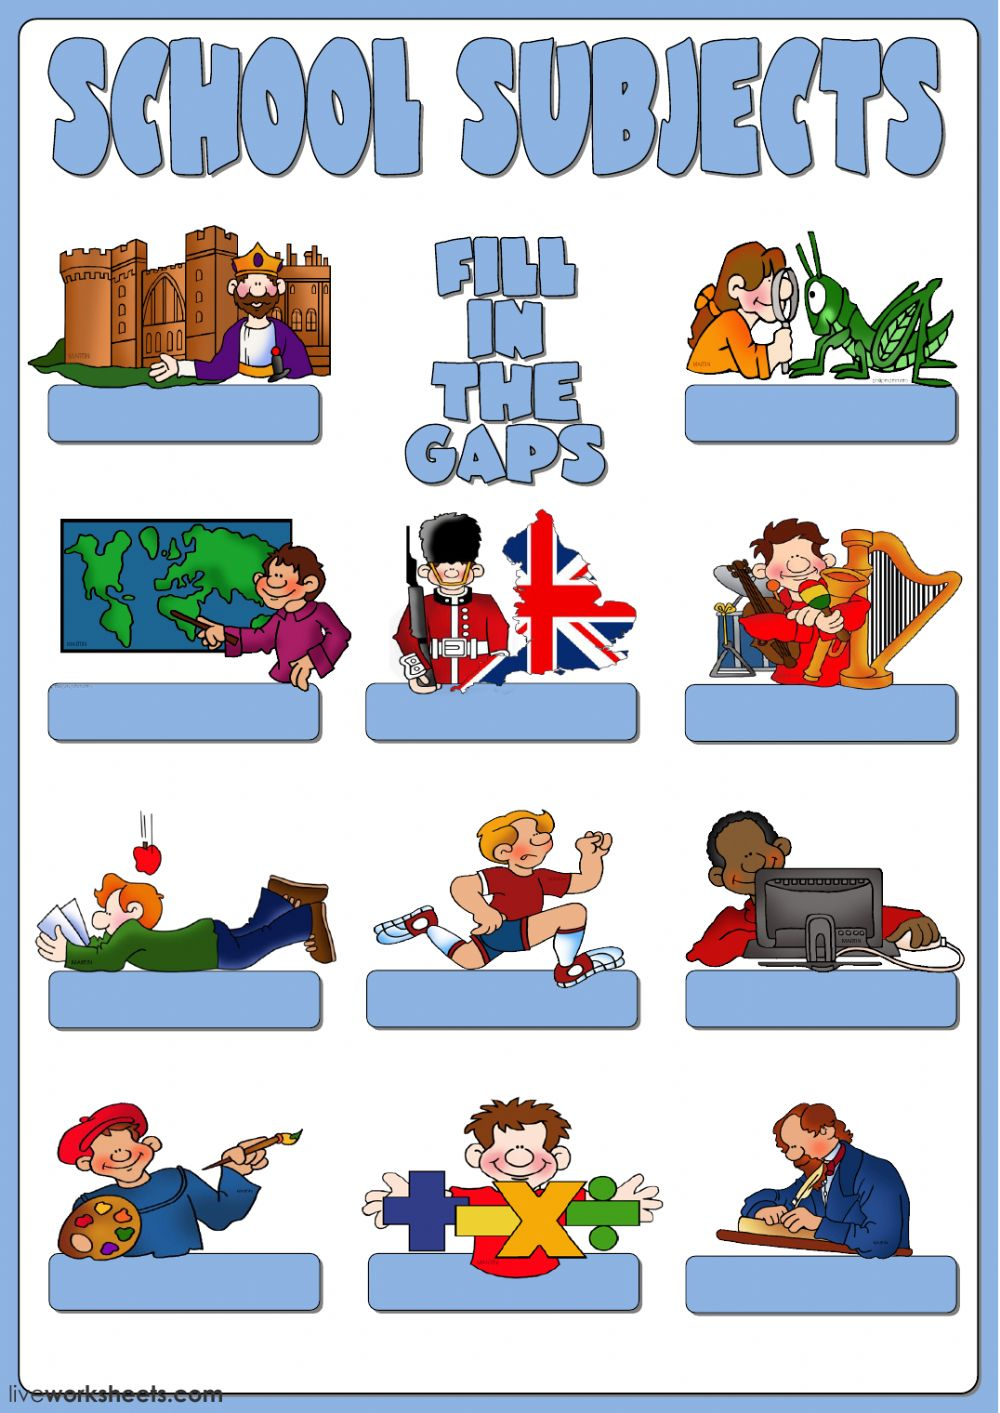 School subjects - Fill in the gaps - Interactive worksheet